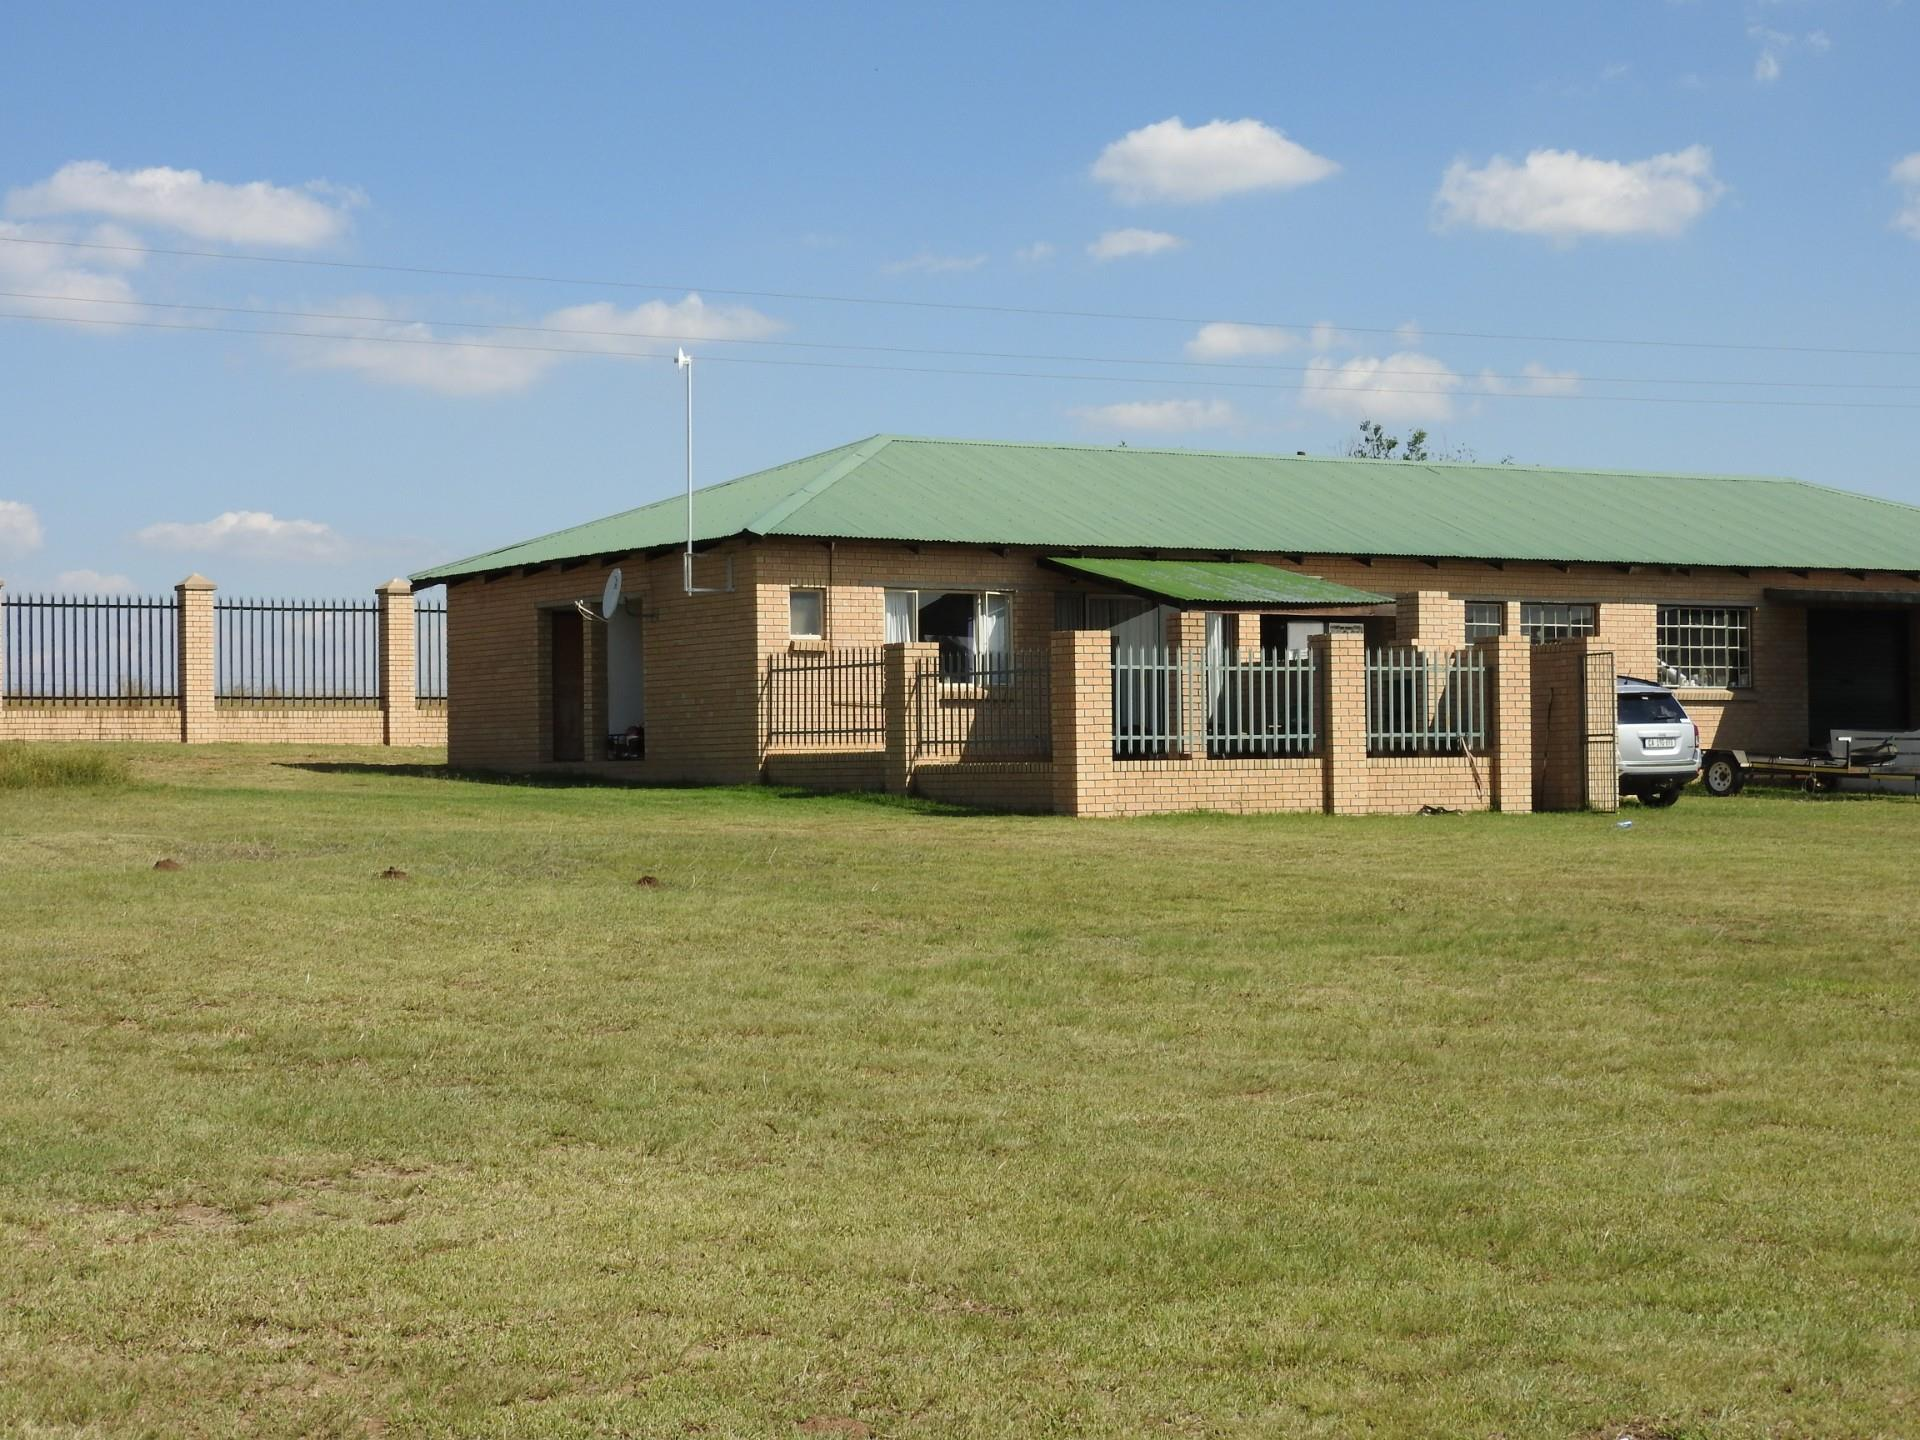 8 Bedroom House For Sale in Vaal Marina